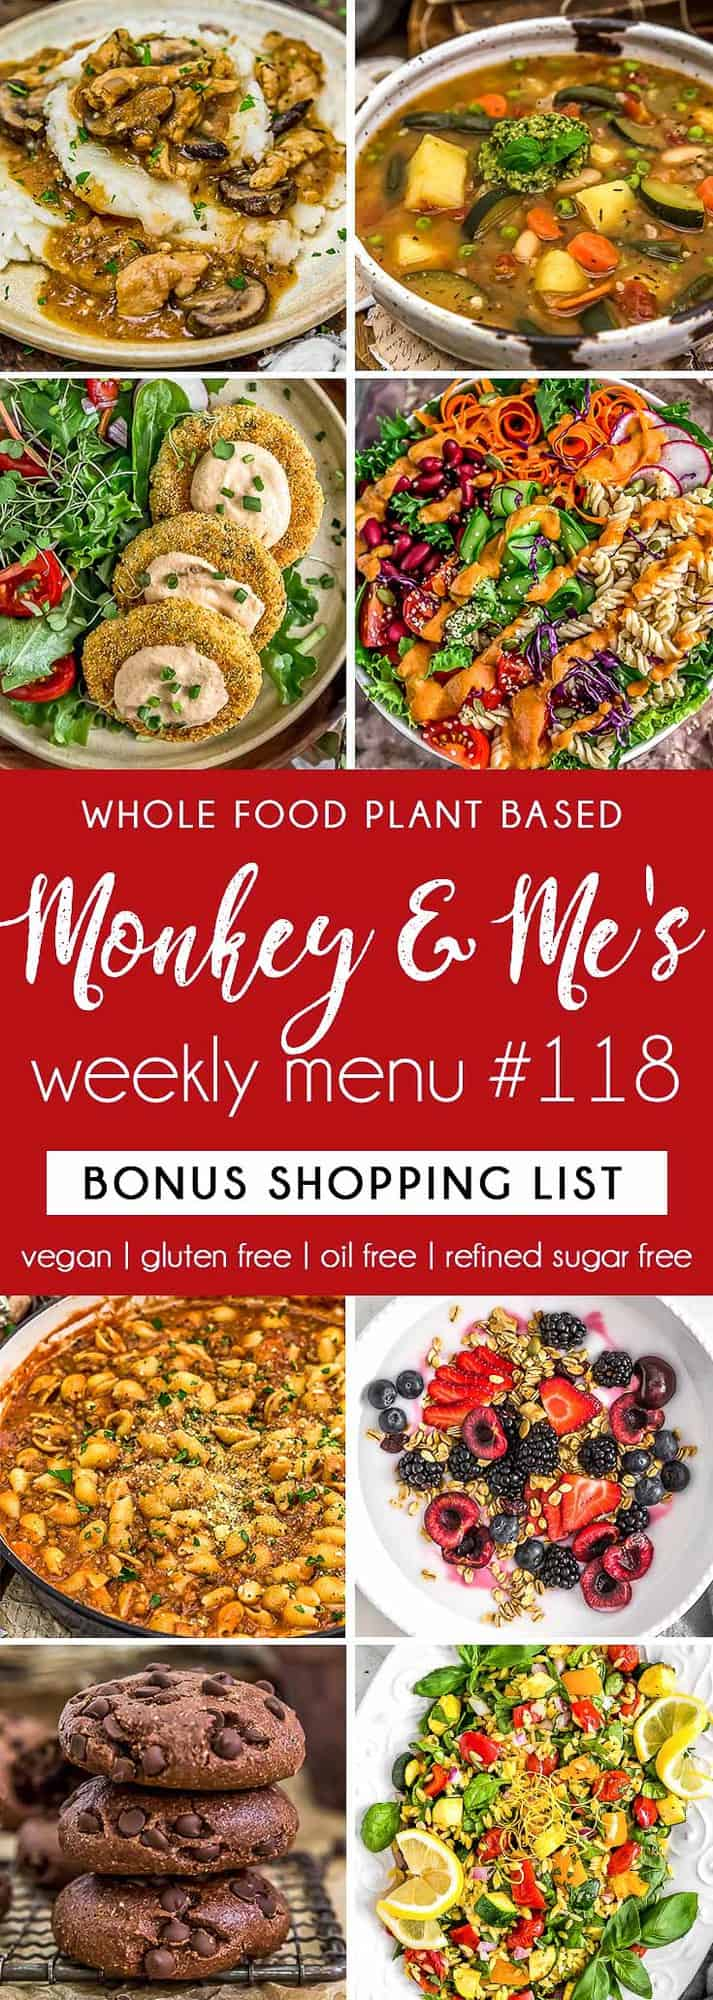 Monkey and Me's Menu 118 featuring 8 recipes